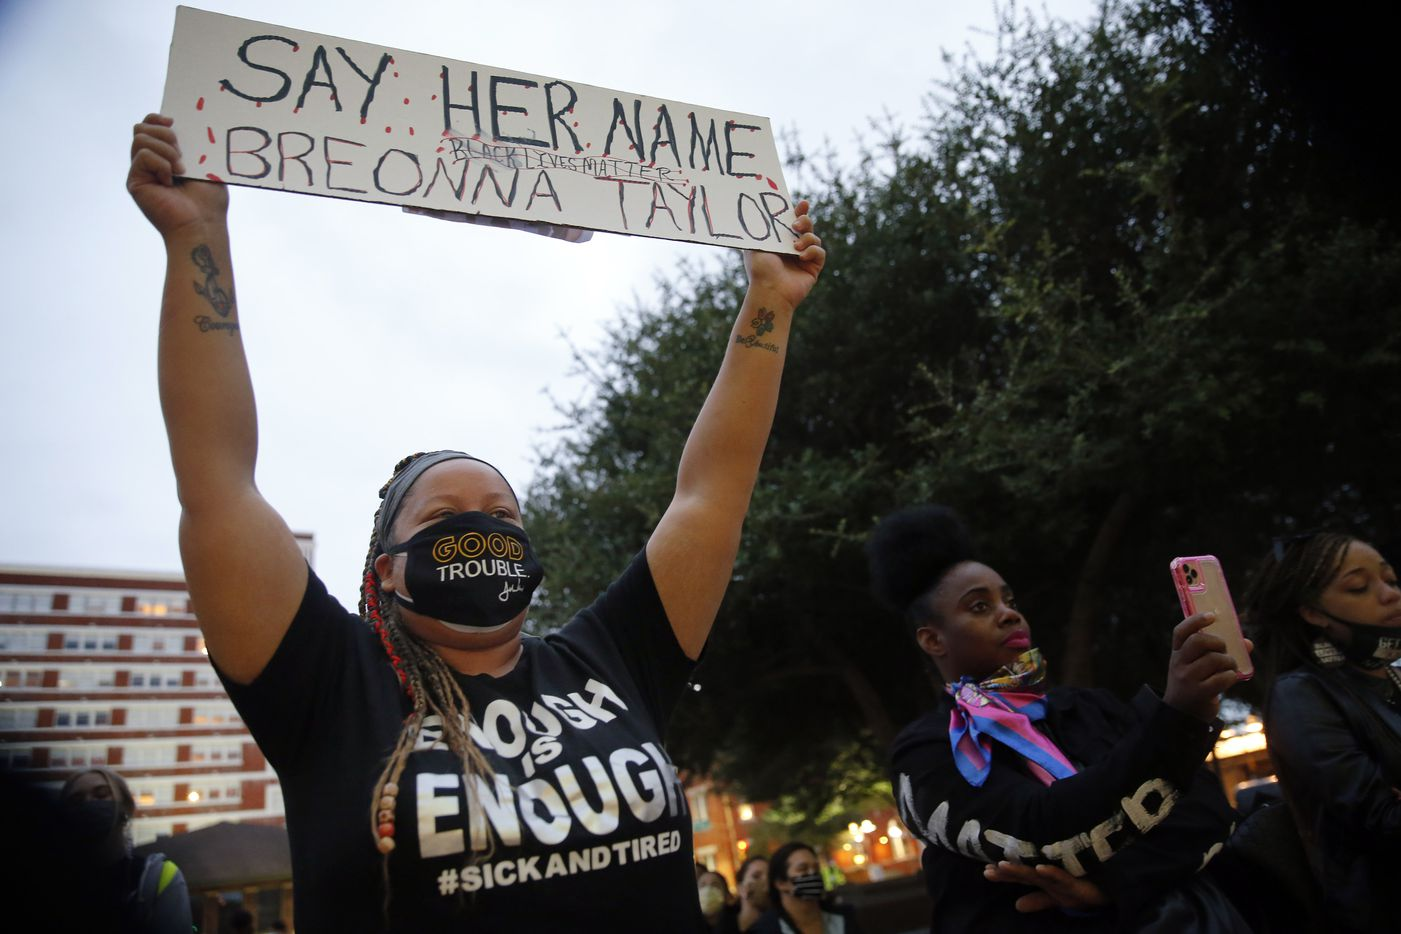 Shena Lee of Dallas proudly held her sign high in support of Breonna Taylor during a Next Generation Action Network protest outside of Dallas Police Headquarters. The group later marched down S. Lamar St. in Dallas, Wednesday, September 23, 2020. A Kentucky grand jury brought no charges against the Louisville police for the killing of Taylor during a drug raid gone wrong. (Tom Fox/The Dallas Morning News)